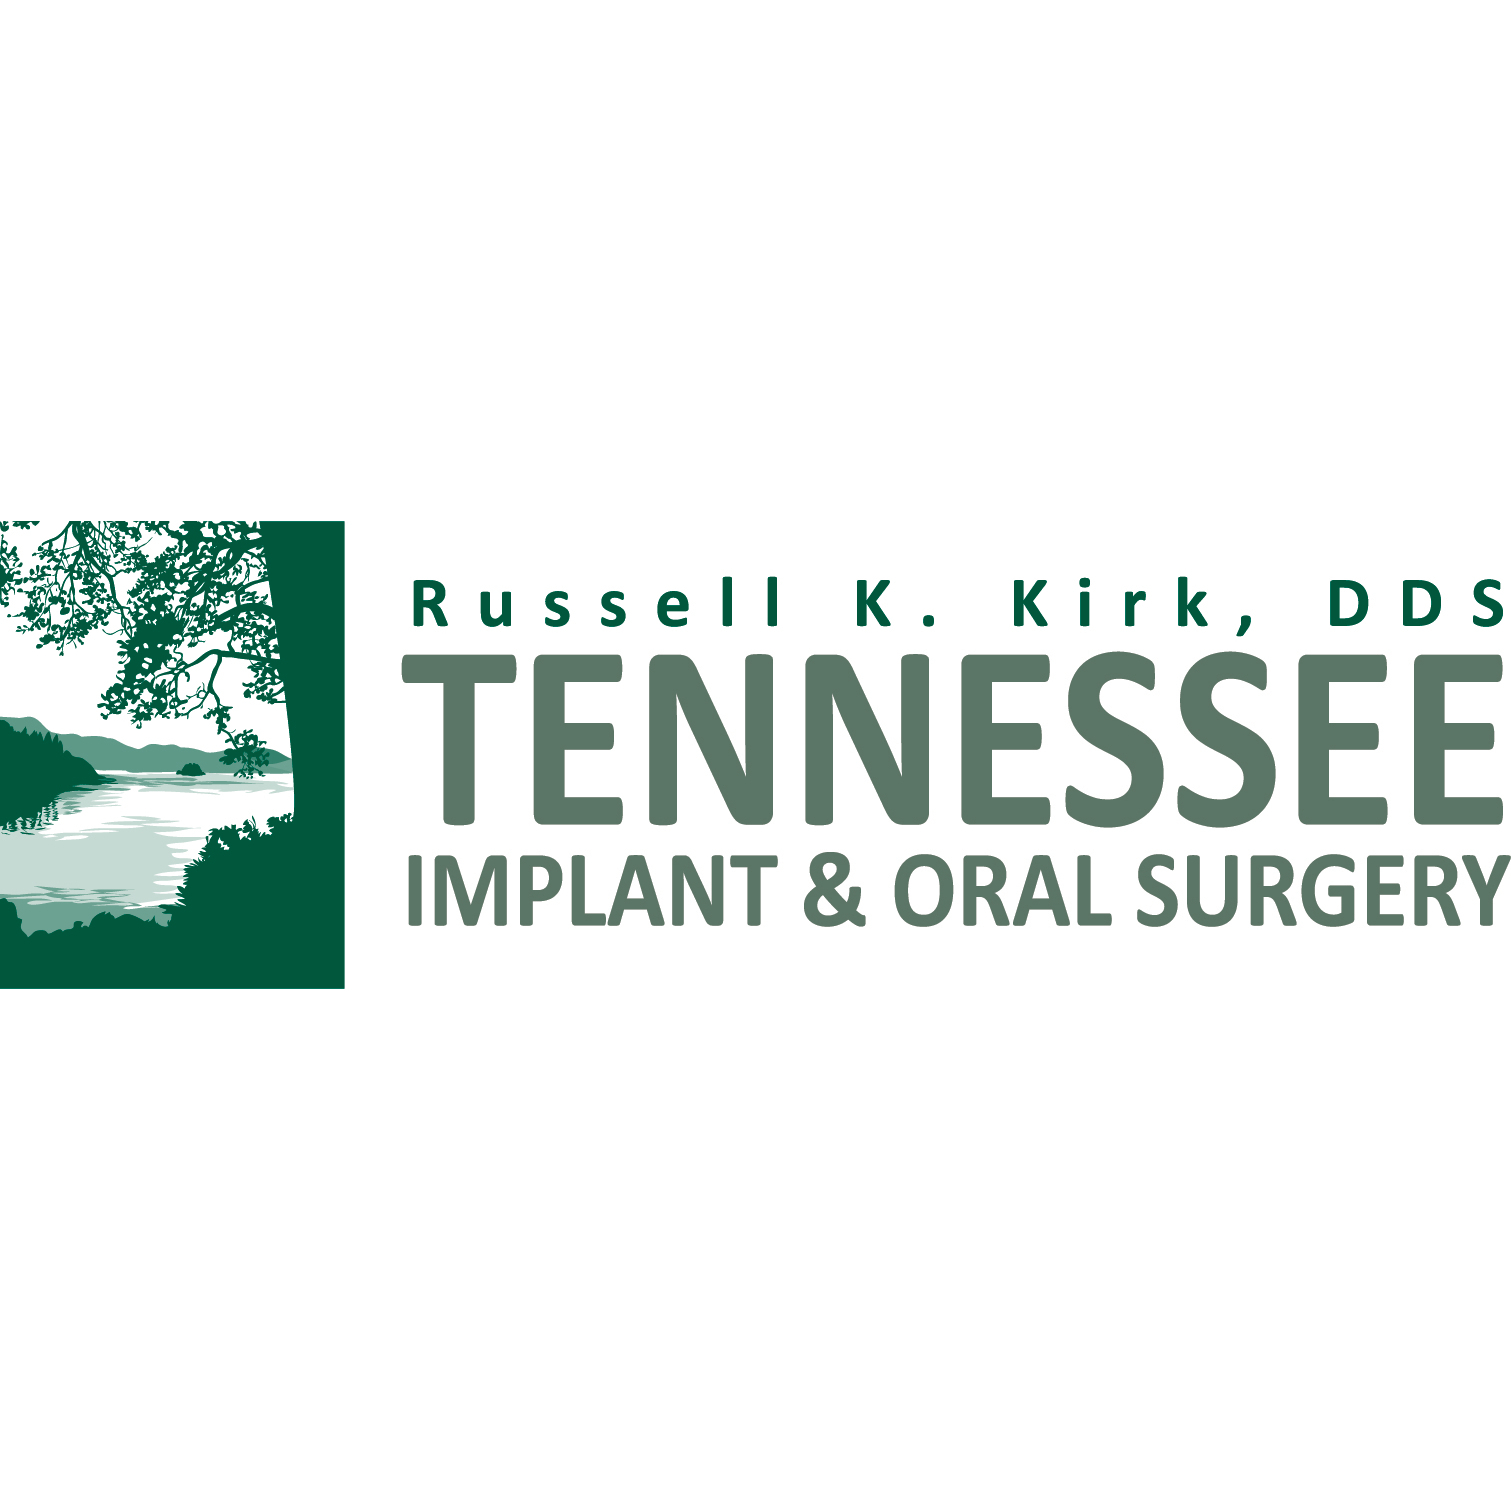 Russell K. Kirk, DDS - Tennessee Implant & Oral Surgery image 2